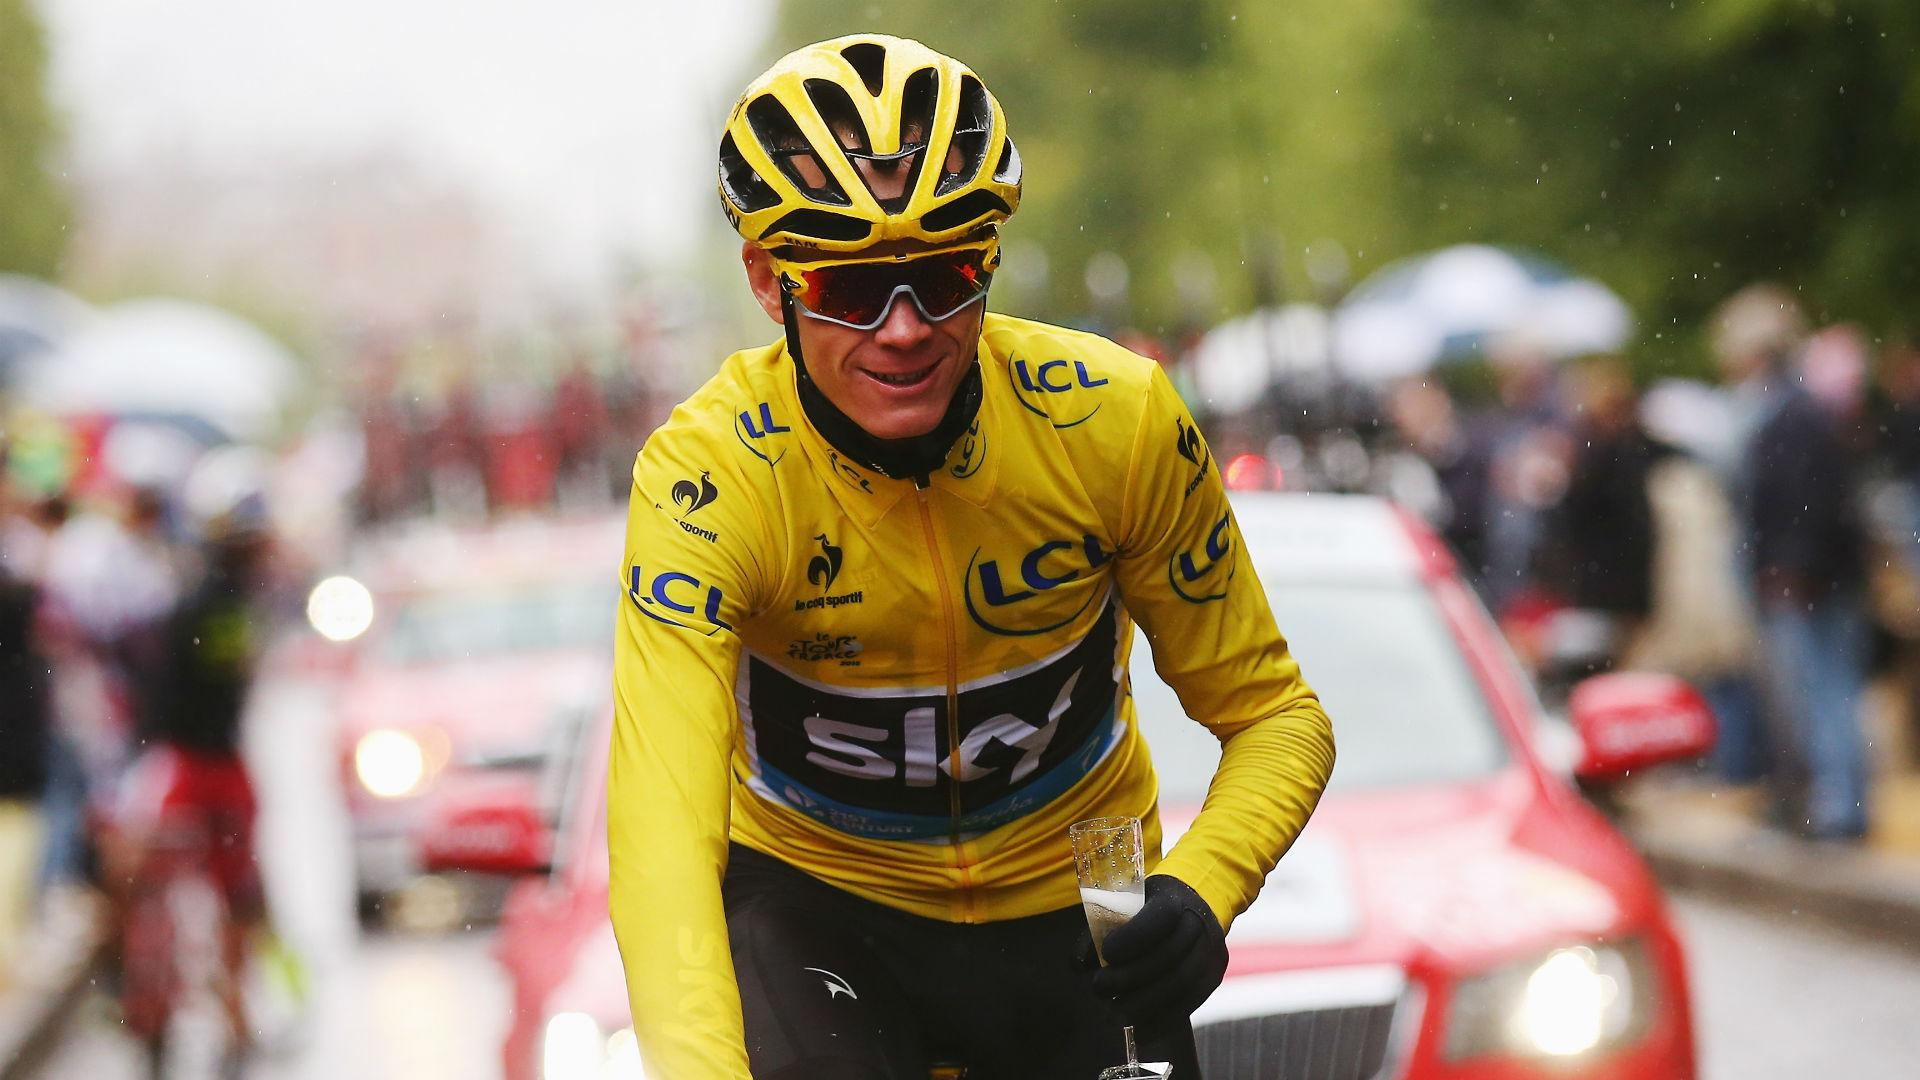 Froome can win back-to-back Tours - Evans